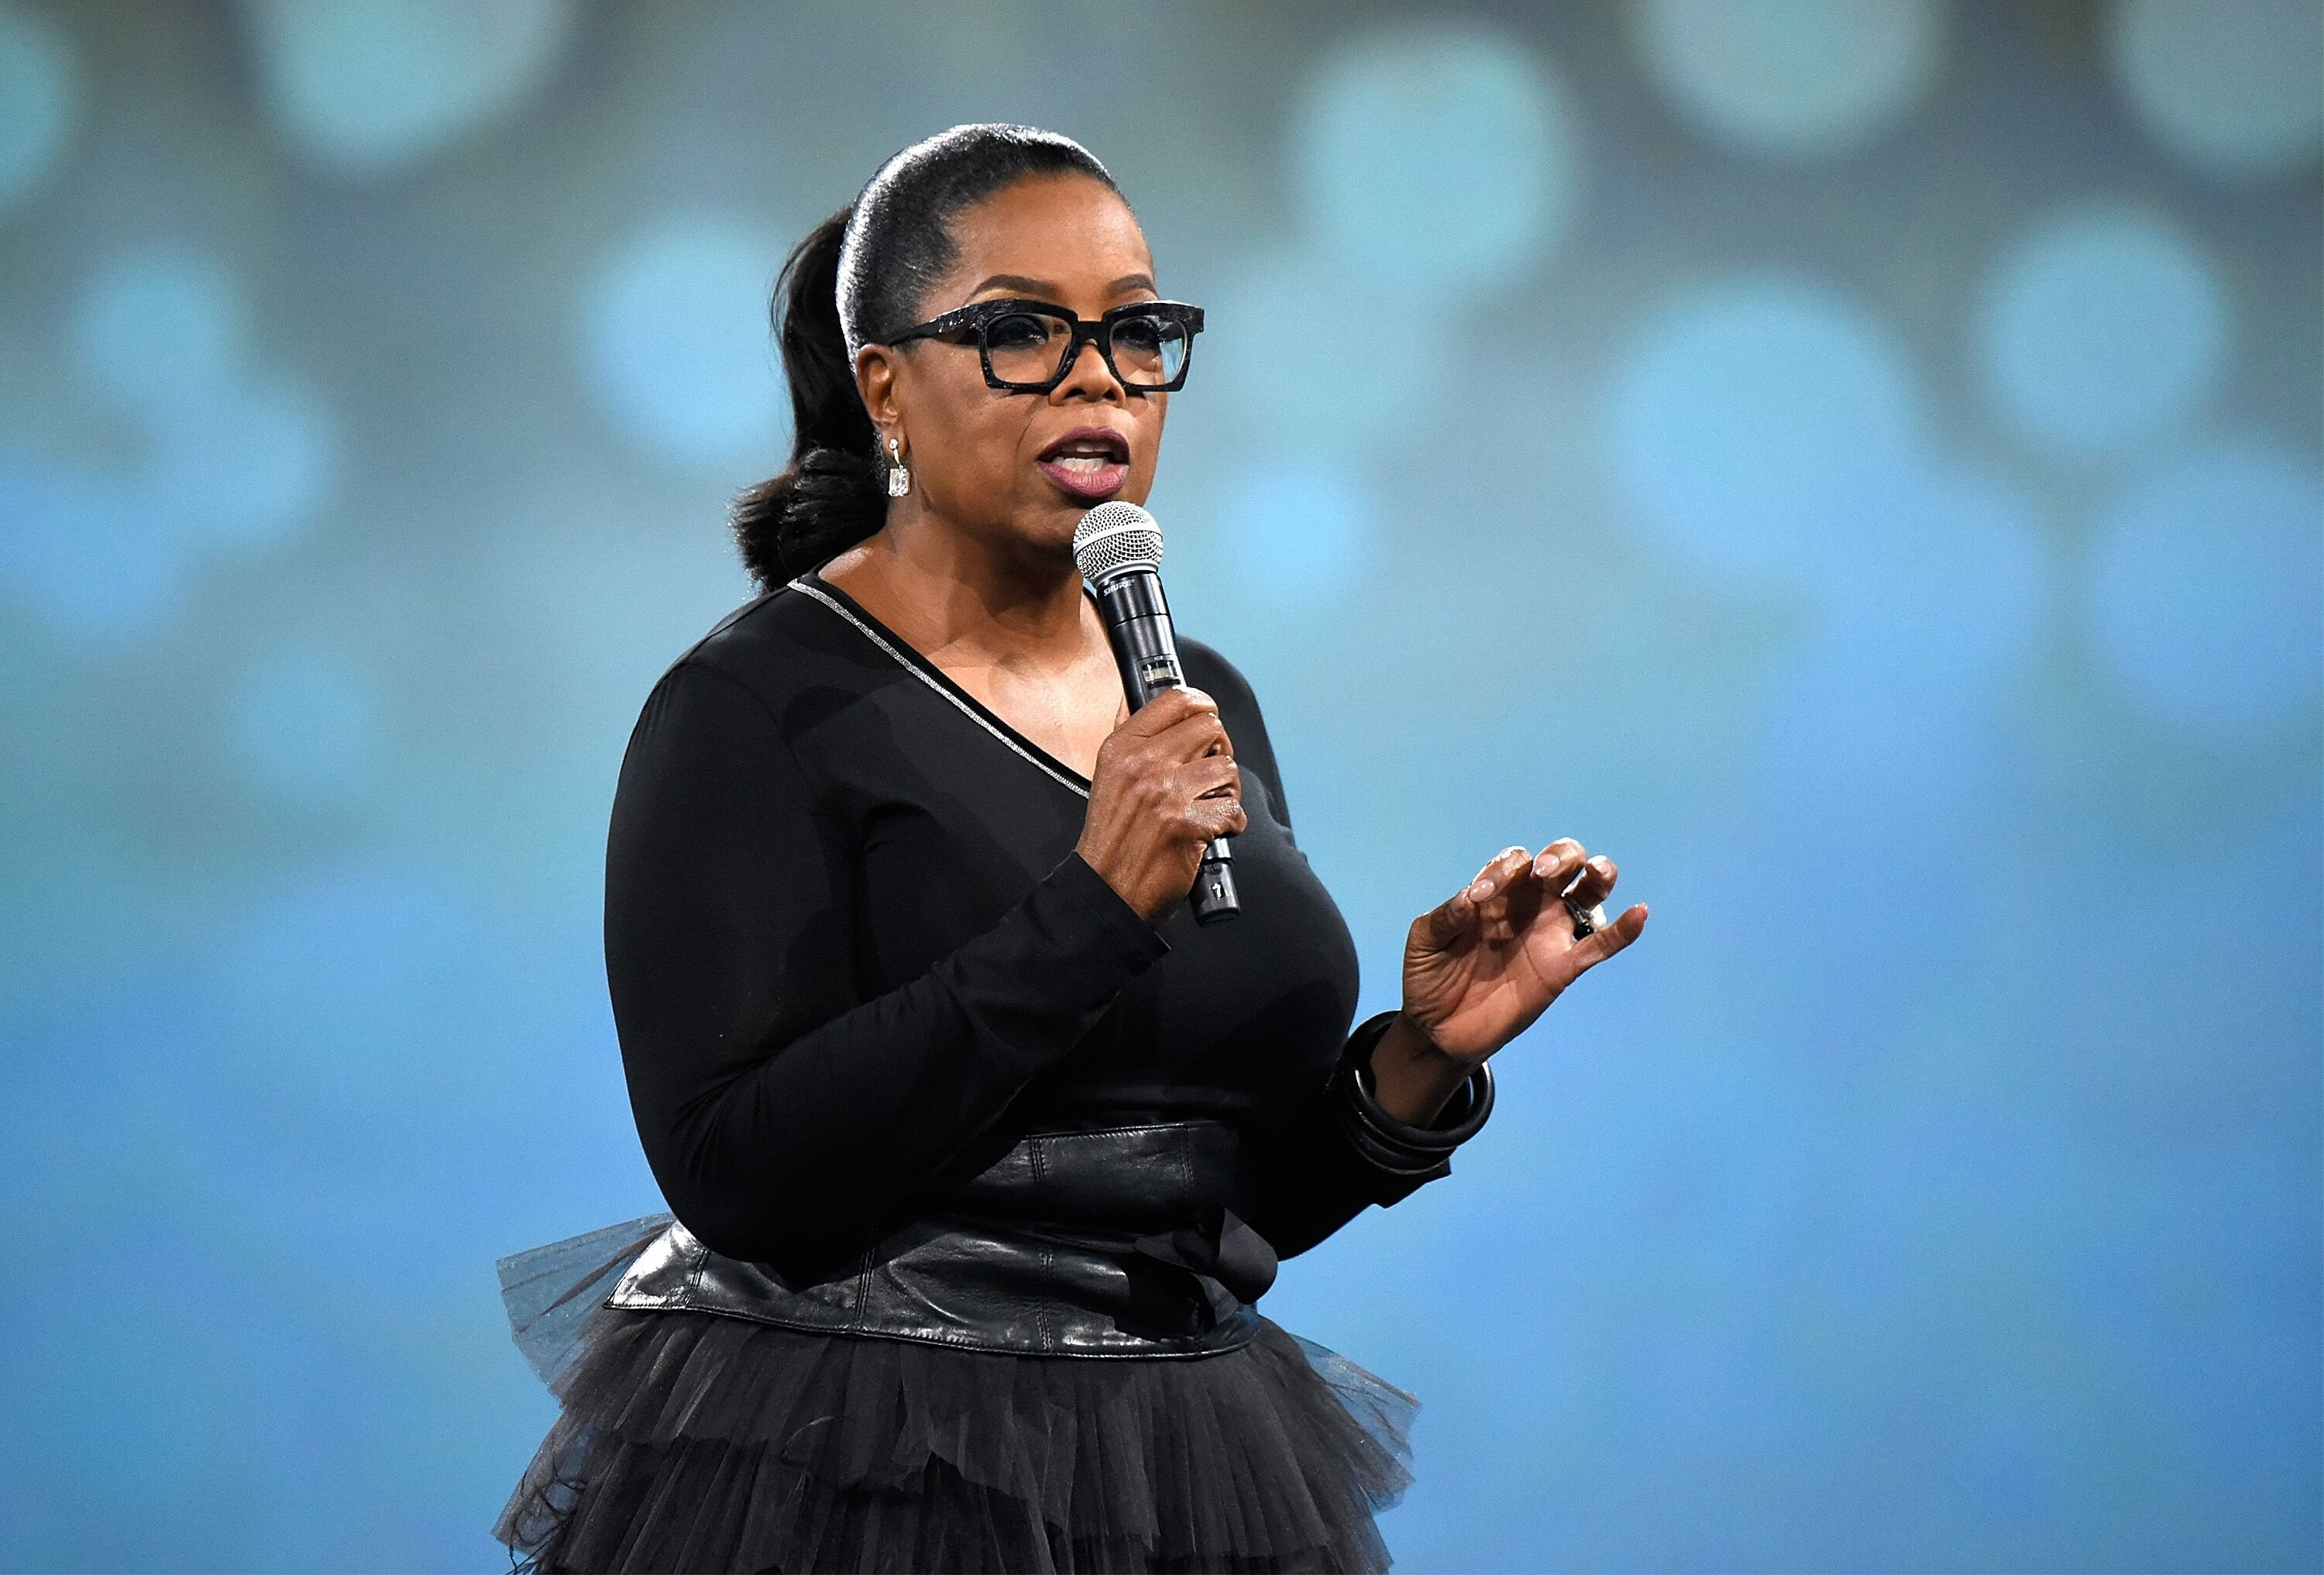 Oprah Winfrey speaks on stage during The Robin Hood Foundation's 2018 benefit at Jacob Javitz Center on May 14, 2018 in New York City | Photo: Getty Images